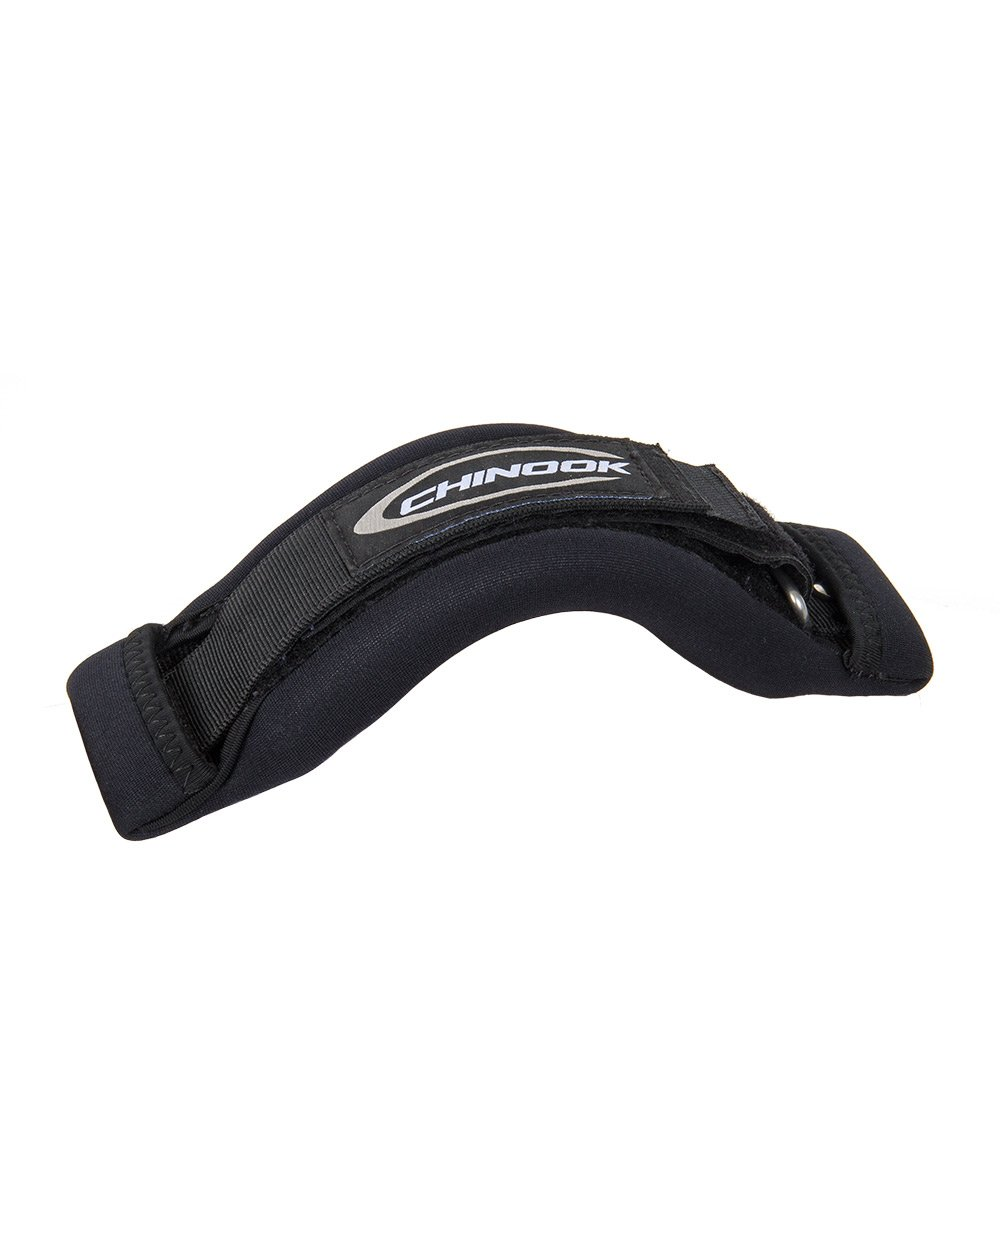 Footstrap-External